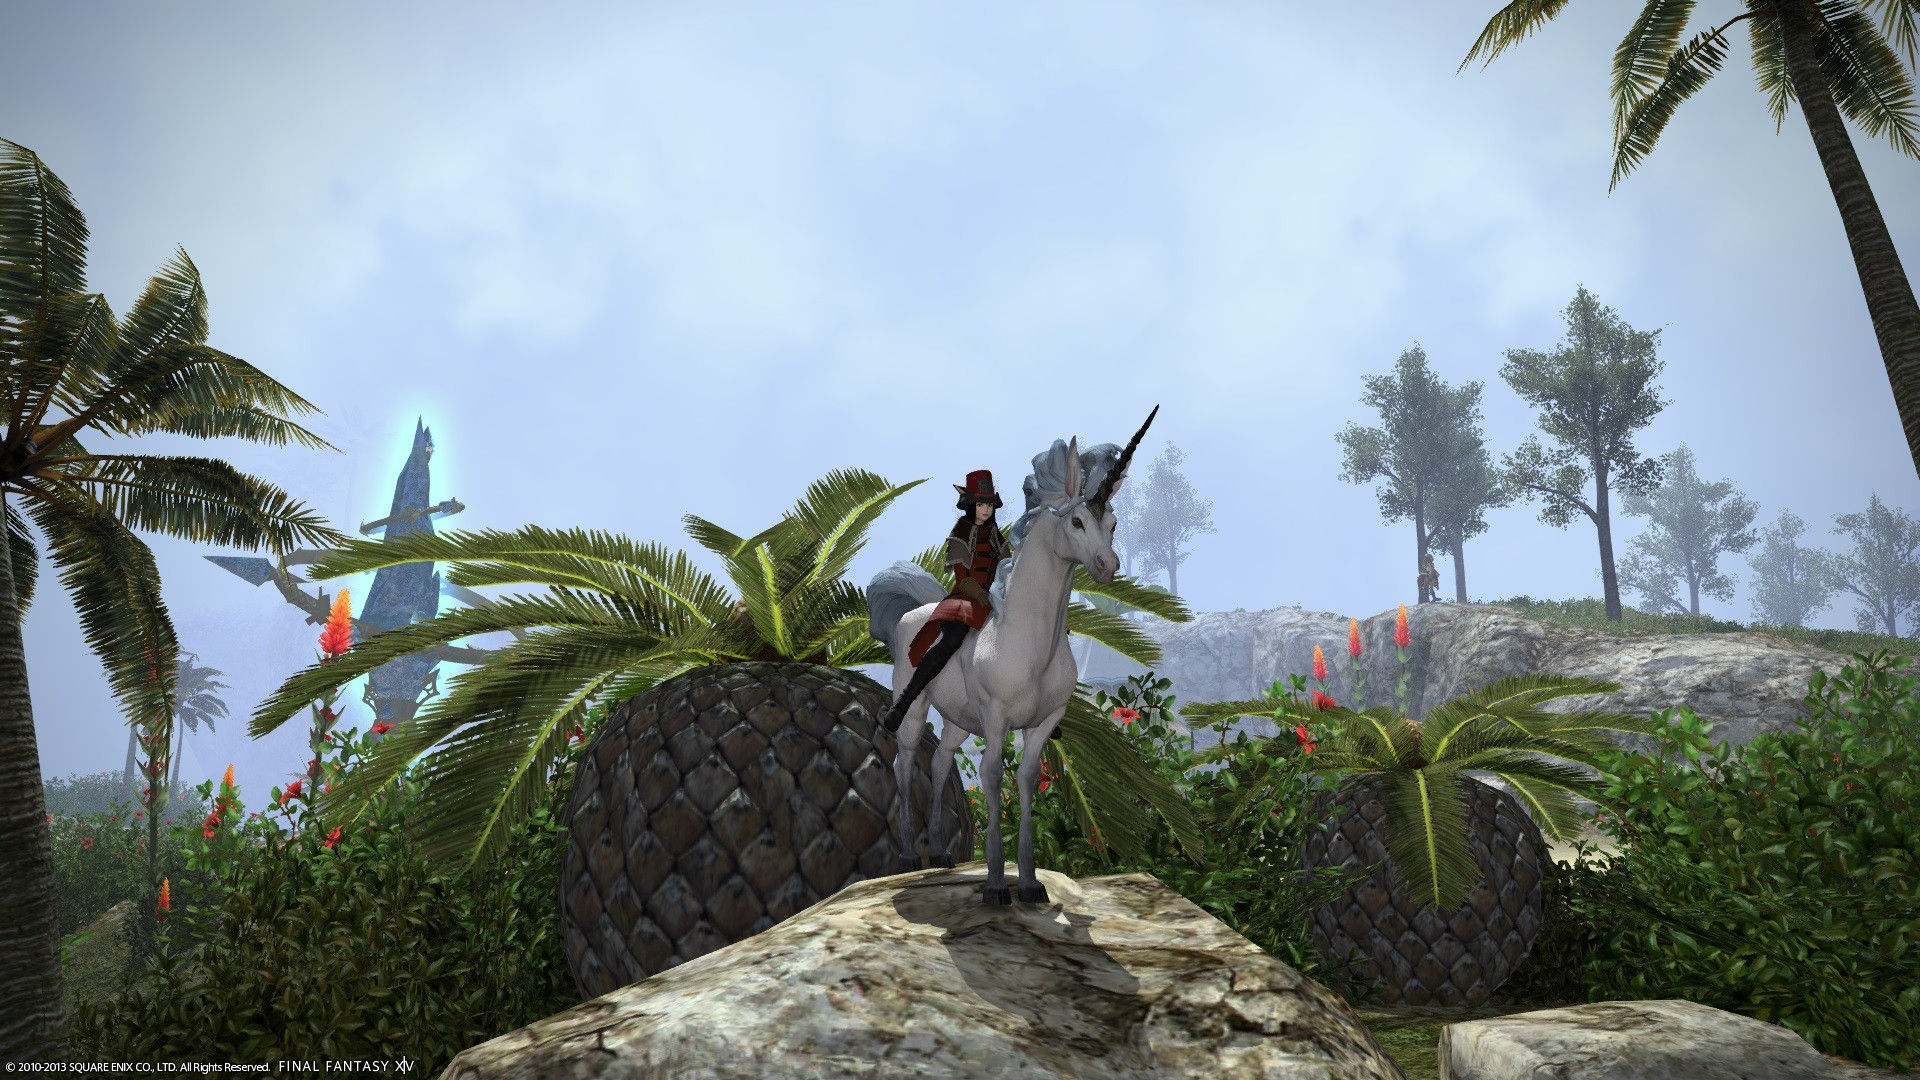 Final Fantasy XIV: A Realm Reborn - Look at my horse, my horse is amazing!